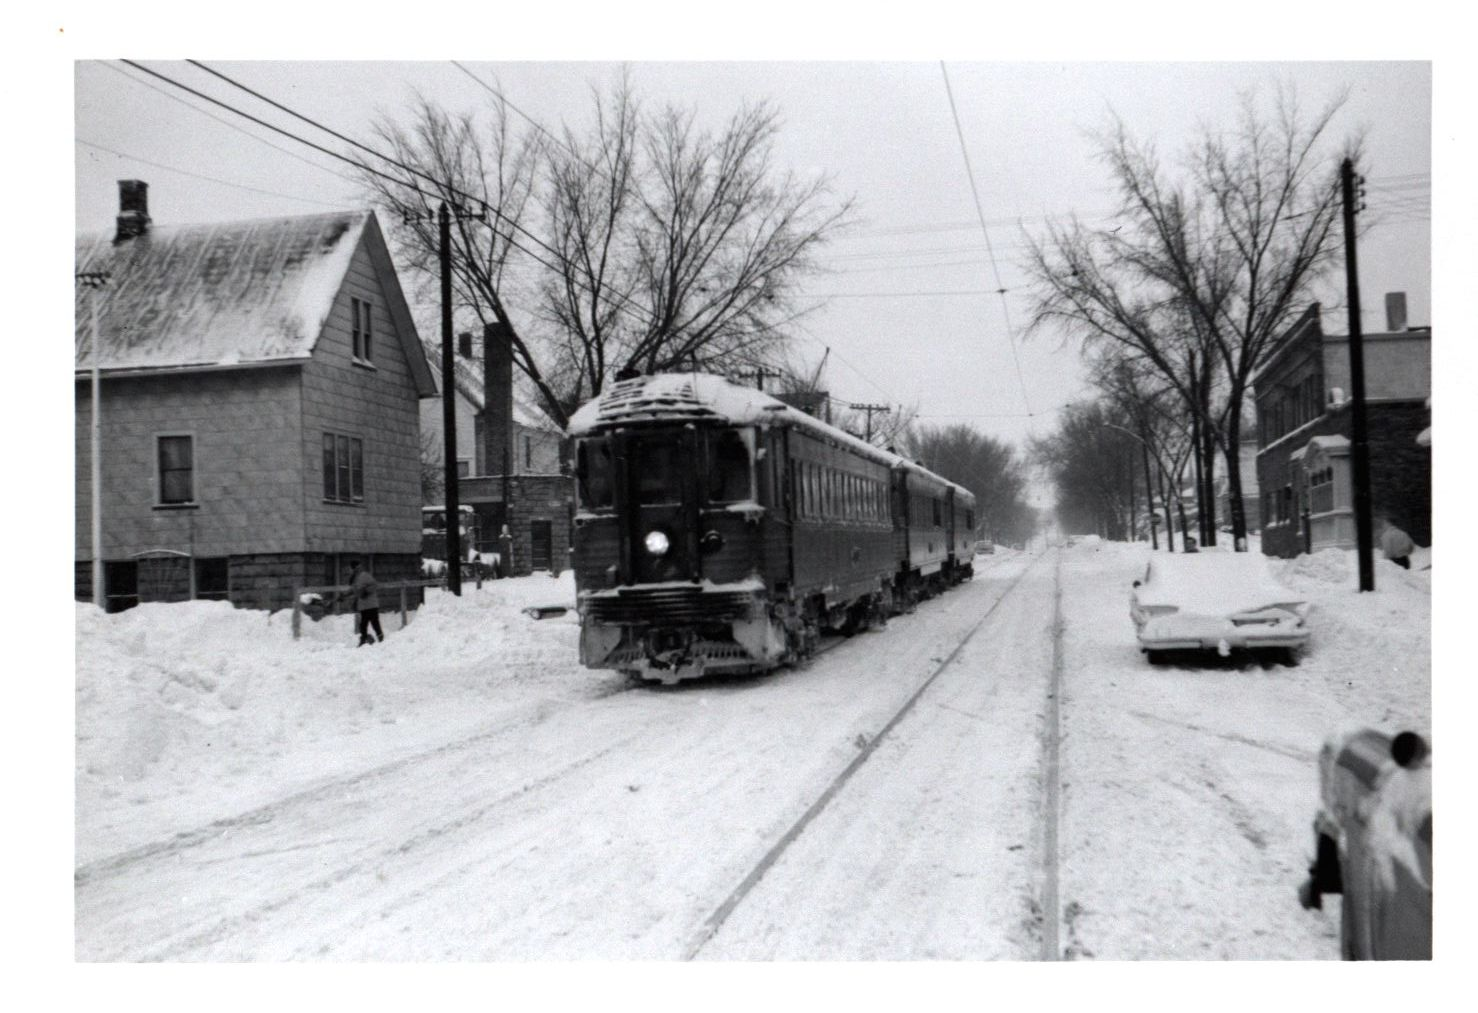 <table class=&quot;lightbox&quot;><tr><td colspan=2 class=&quot;lightbox-title&quot;>Milwaukee Interurban Line</td></tr><tr><td colspan=2 class=&quot;lightbox-caption&quot;>An interurban streetcar traverses a snowy Milwaukee neighborhood in this twentieth century photograph.</td></tr><tr><td colspan=2 class=&quot;lightbox-spacer&quot;></td></tr><tr class=&quot;lightbox-detail&quot;><td class=&quot;cell-title&quot;>Source: </td><td class=&quot;cell-value&quot;>From the Robert W. Eichelberg Papers. Archives, University of Wisconsin-Milwaukee Libraries.<br /><a href=&quot;http://digicoll.library.wisc.edu/cgi/f/findaid/findaid-idx?c=wiarchives;view=reslist;subview=standard;didno=uw-mil-uwmmss0228&quot; target=&quot;_blank&quot;>University of Wisconsin-Milwaukee Libraries</a></td></tr><tr class=&quot;filler-row&quot;><td colspan=2>&nbsp;</td></tr></table>